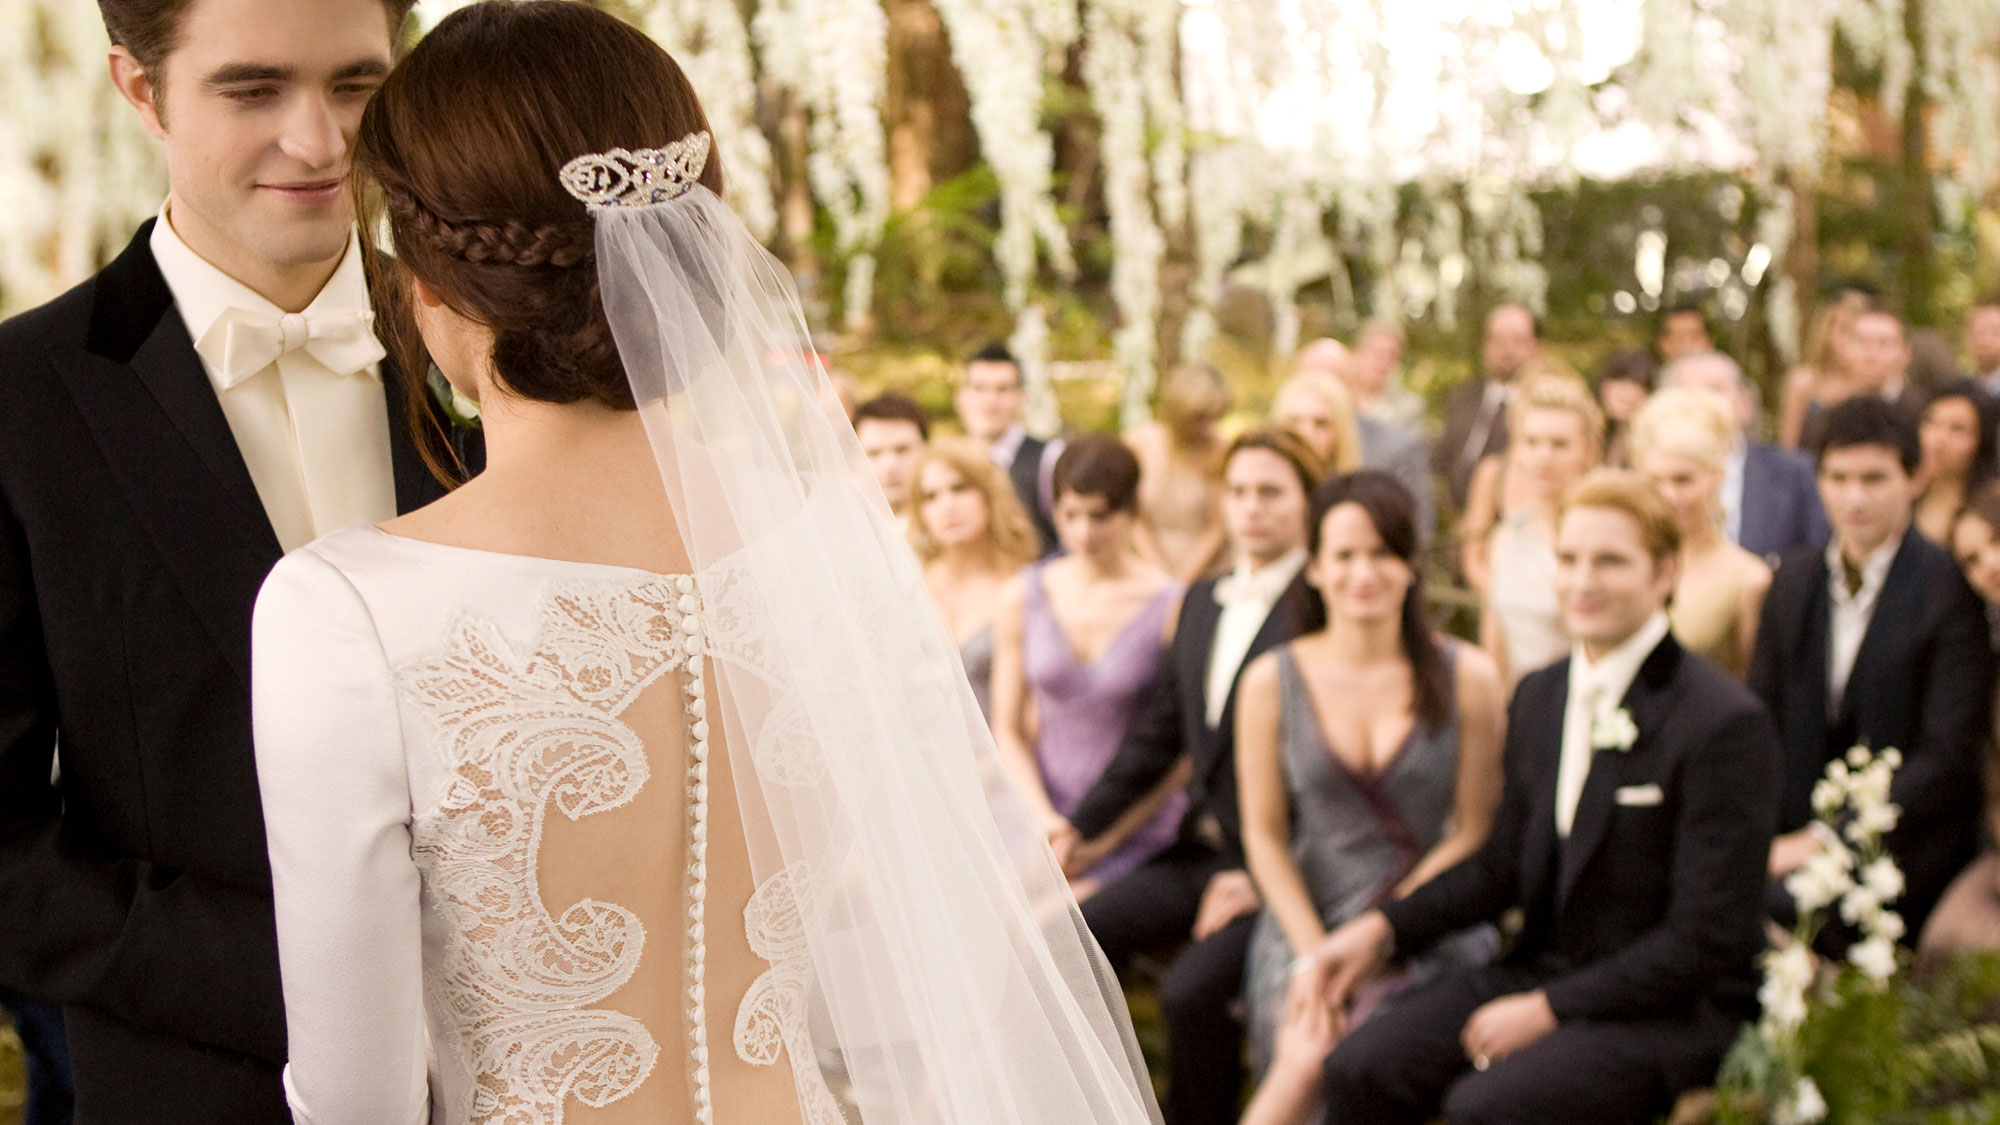 Twilight Fans You Can Now Buy Bella Swan's Actual Wedding Dress: Twilight Bella Swan Wedding Ring At Reisefeber.org